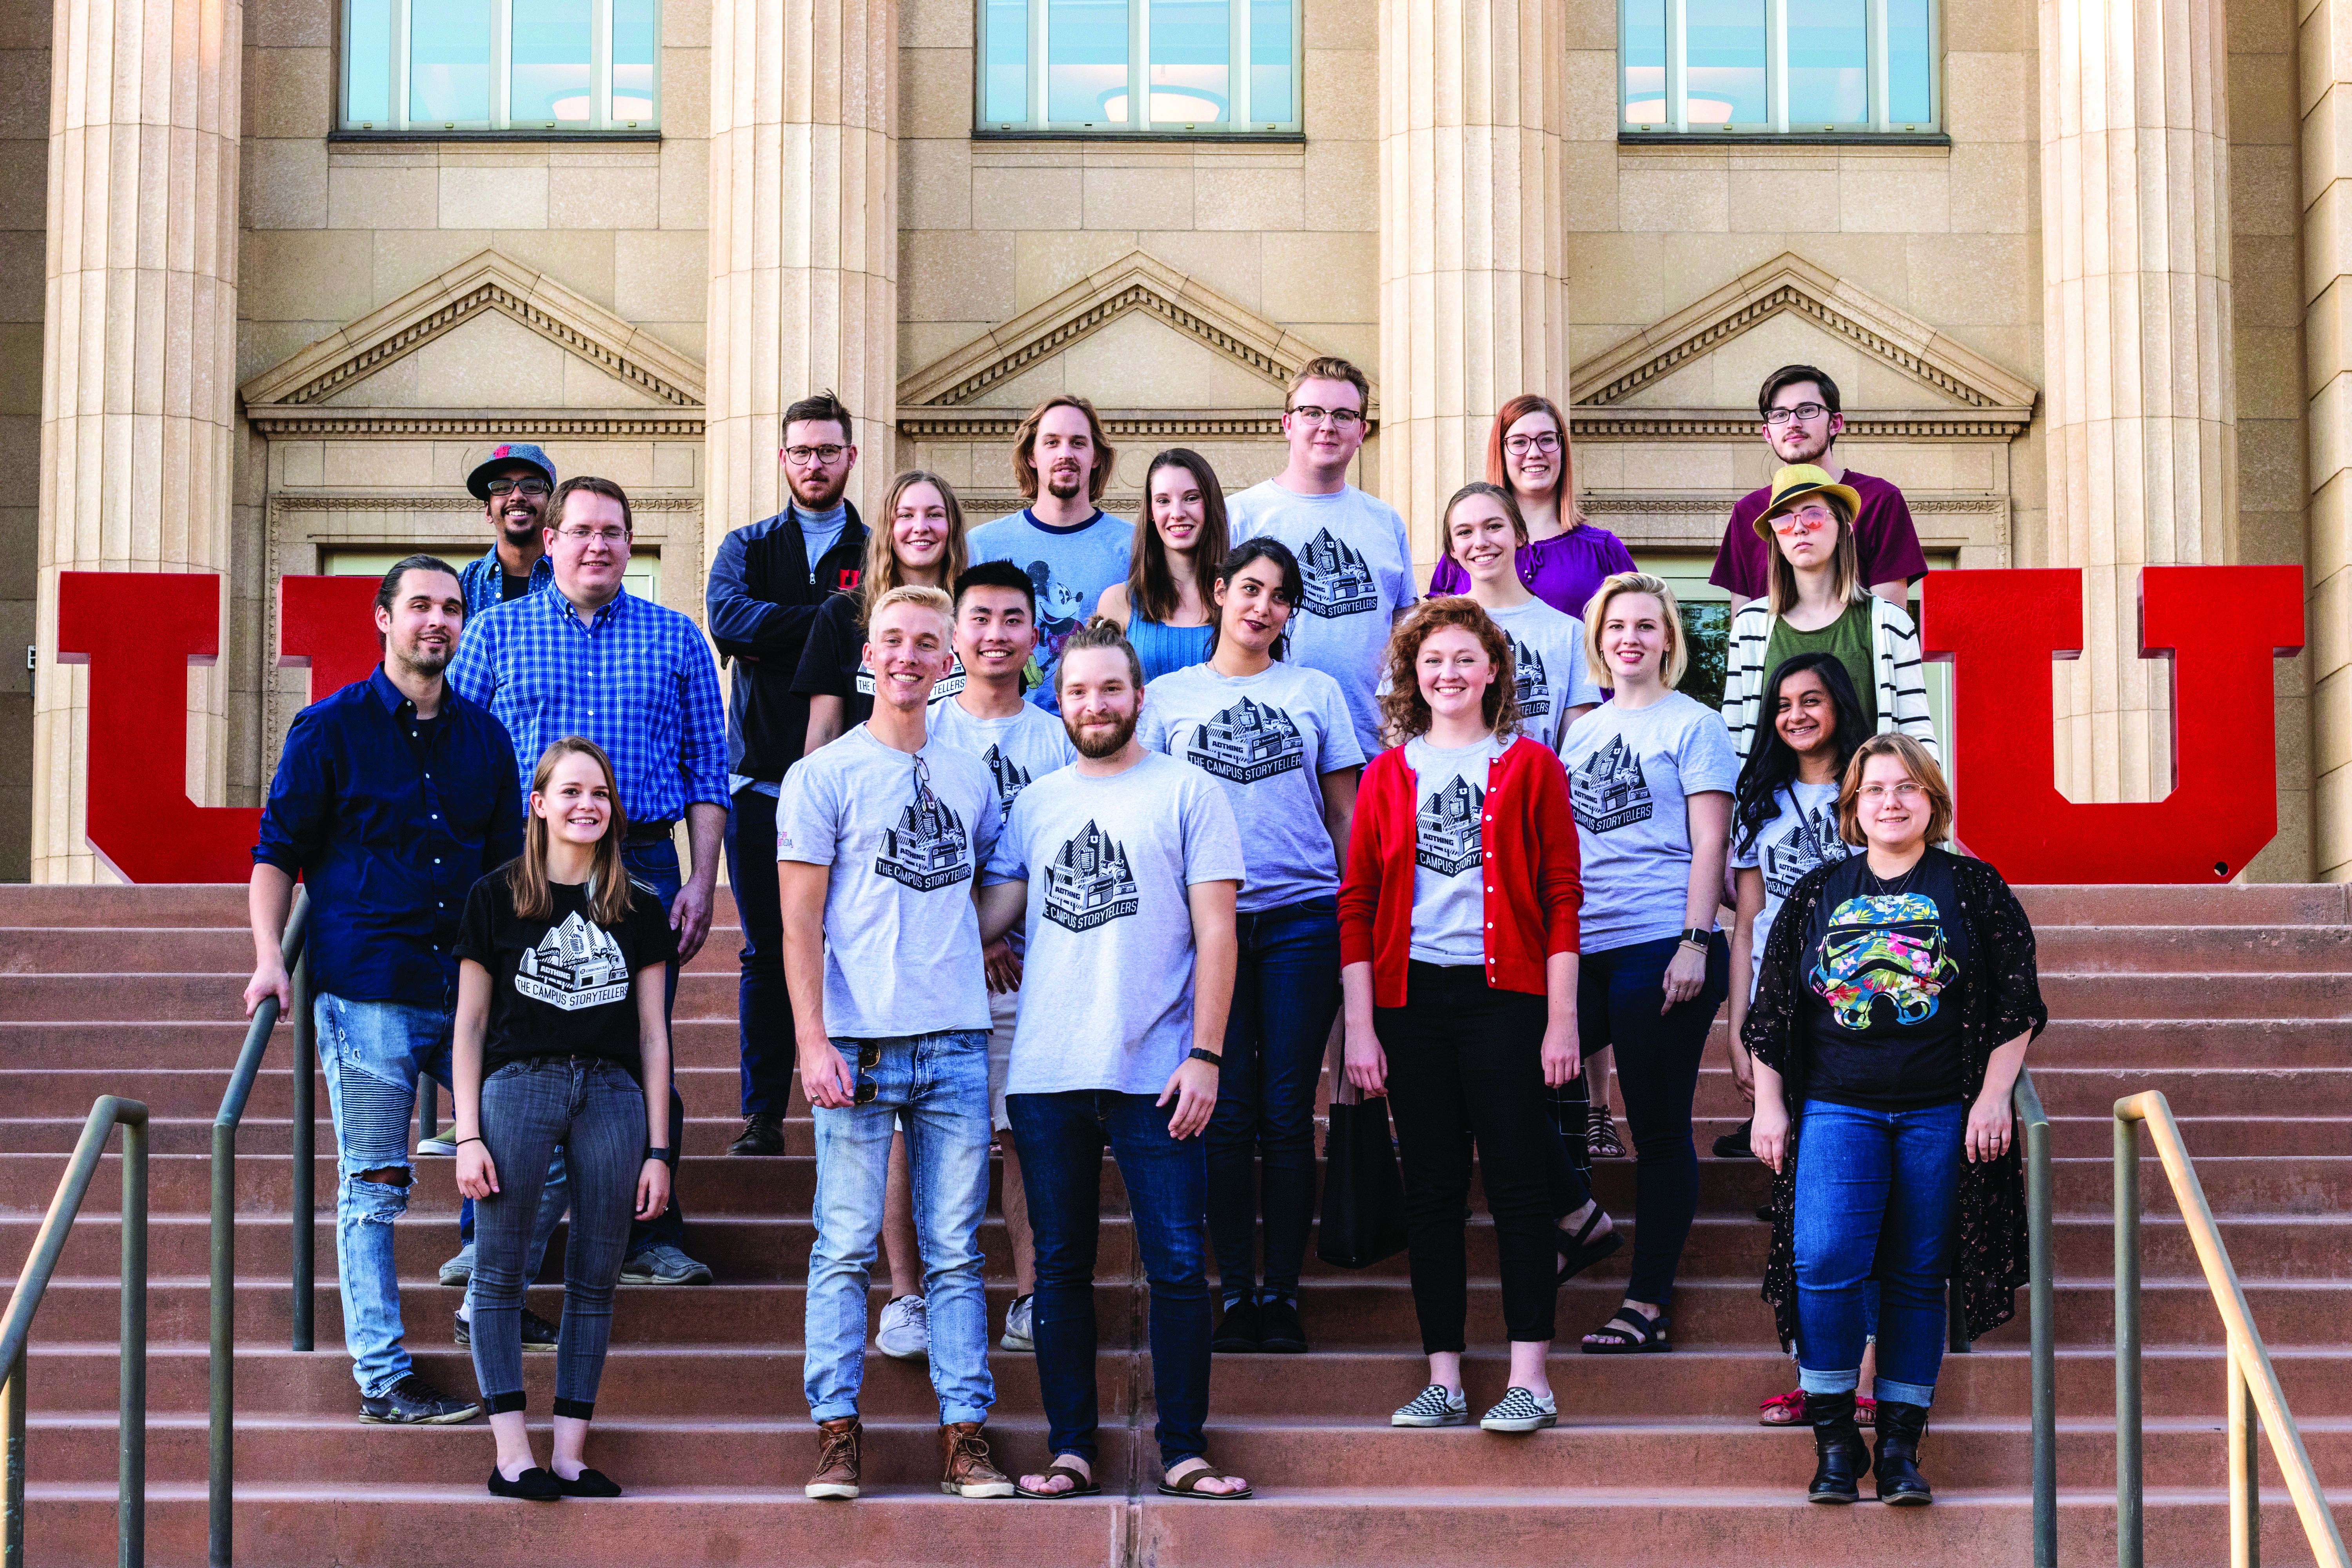 Some of The Daily Utah Chronicle staff (Photo by: Justin Prather | The Daily Utah Chronicle).